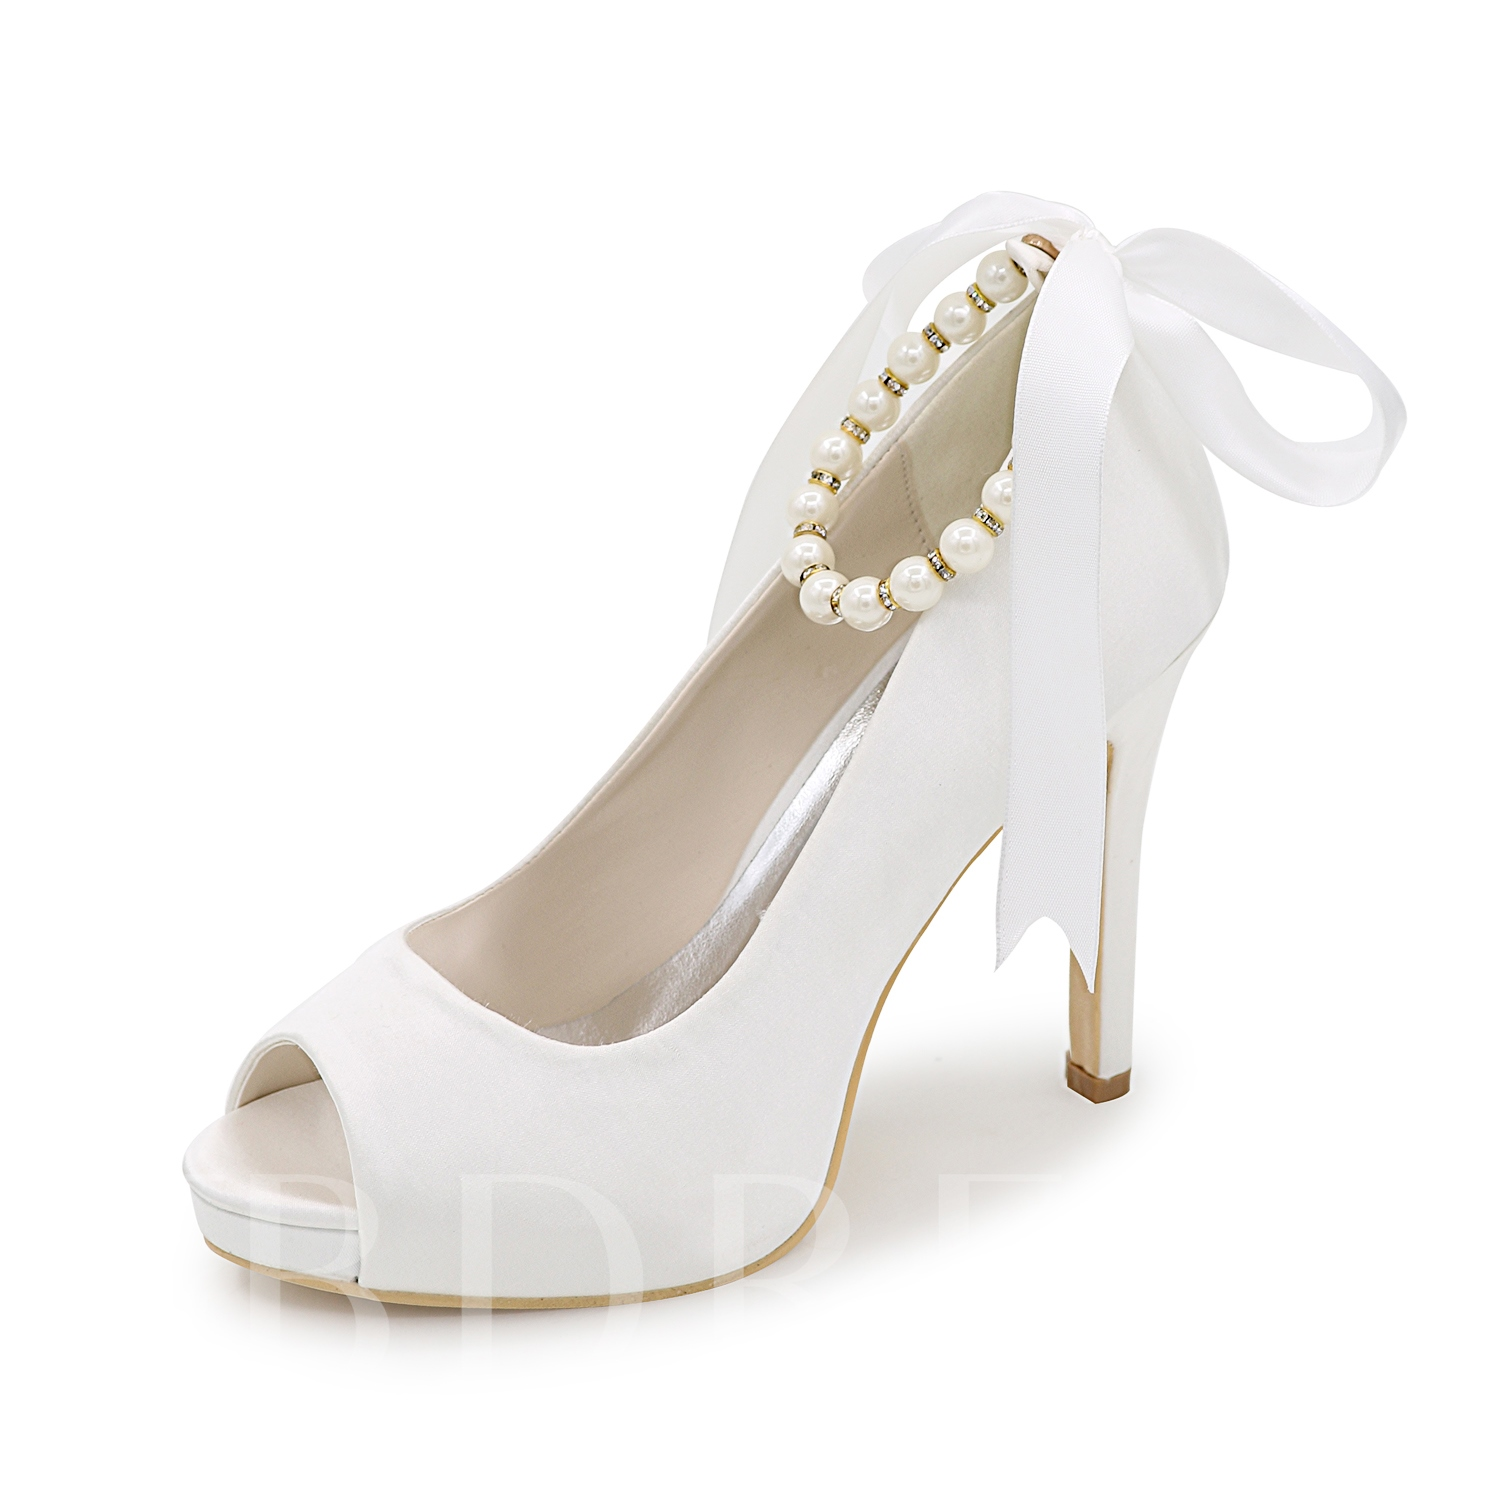 Buy Lace-Up Plain Peep Toe Bead Stiletto Heel Women's Pumps, Spring,Summer,Fall, 12219431 for $56.99 in TBDress store